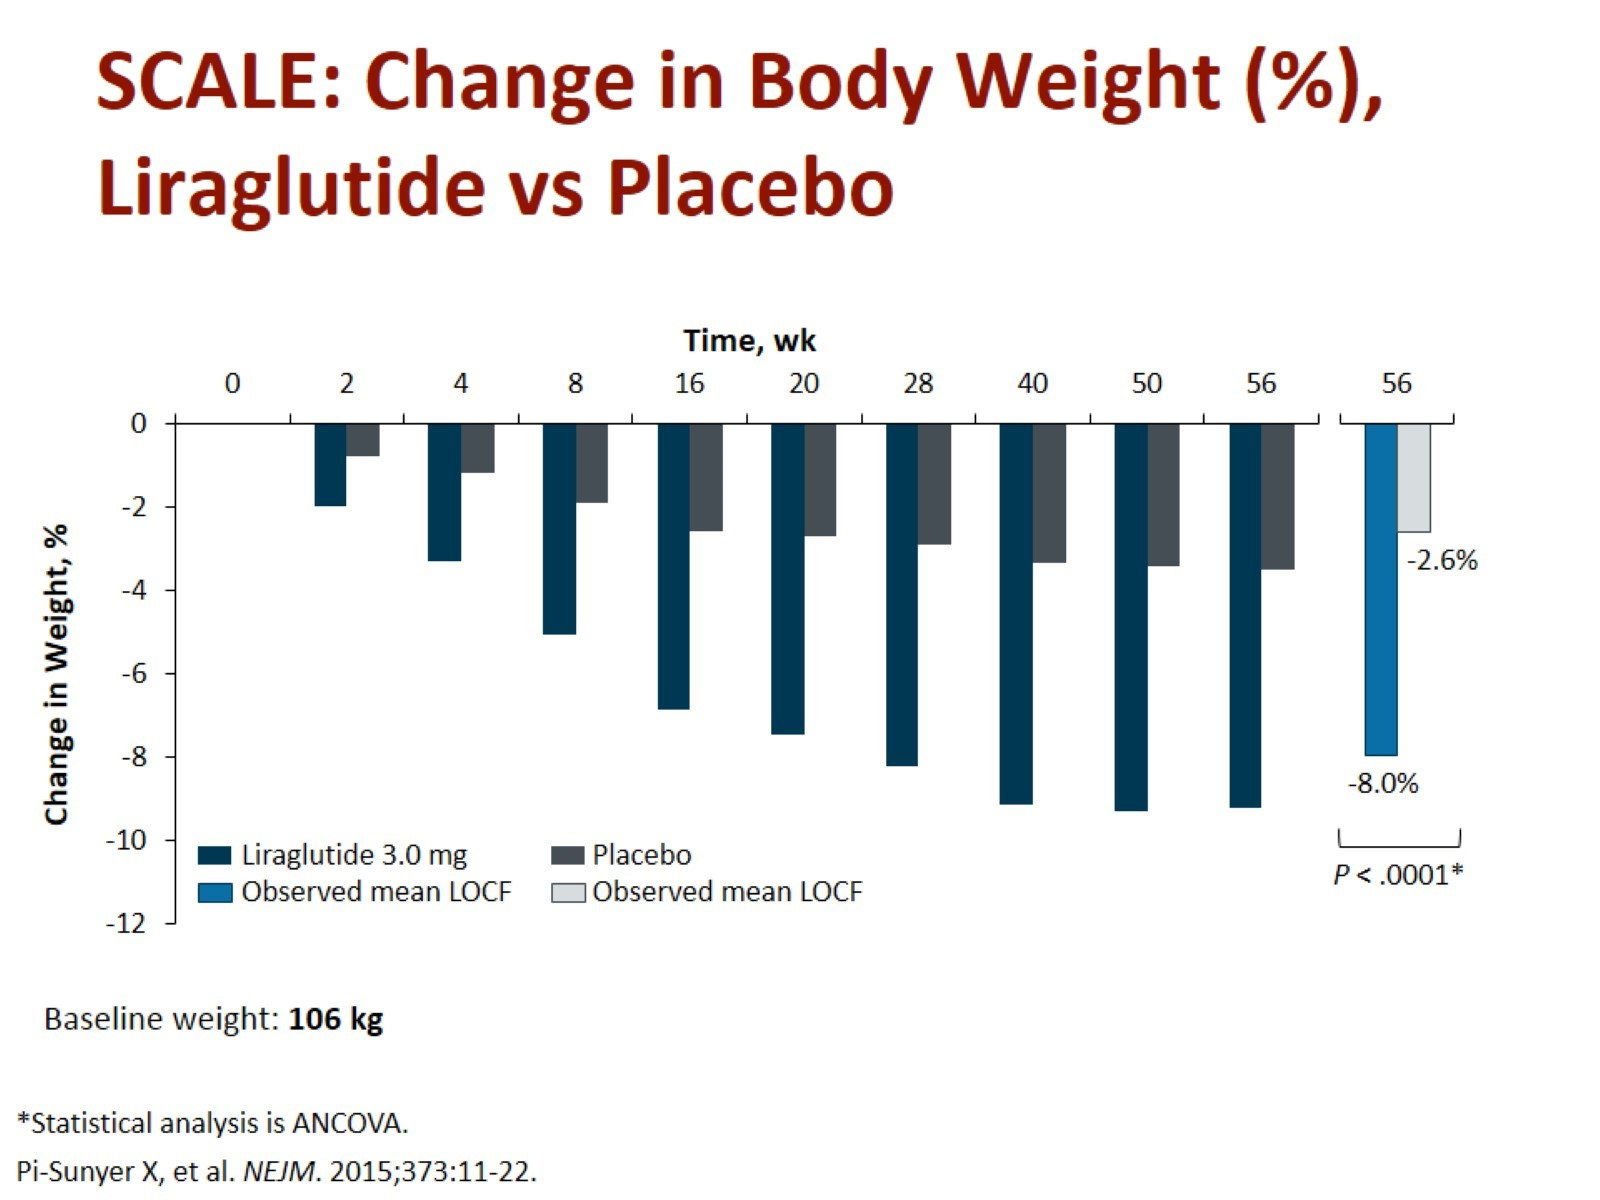 Změna hmotnosti při podávání liraglutidu vs. placebo v délce 1 roku. Zdroj: Pi-Sunyer X, Astrum A, Fujioka K et al. A randomized, controlled trial of 3.0 mg of Liraglutide in weight management. N Engl J Med 2015; 373: 11–22. doi: 10.1056/NEJMoa1411892.<br>